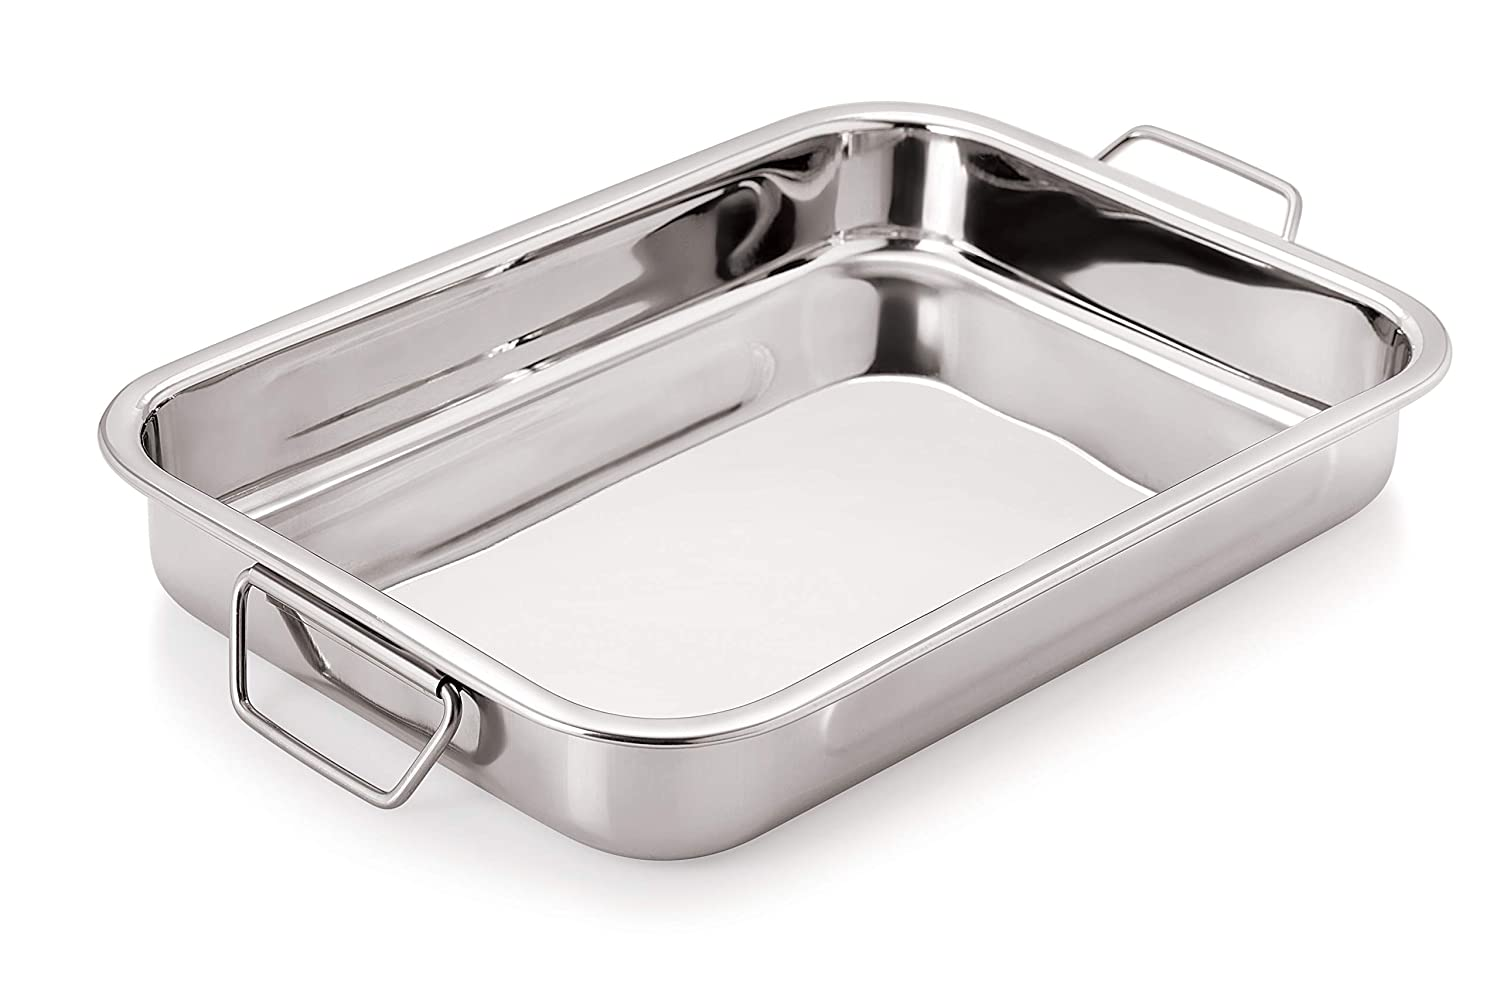 Chef Direct Stainless Steel Roast Pan with Folding Handles Rectangular Lasagna Pan for Baking, Roasting, Grilling - Length 30 cm X Width 21 cm